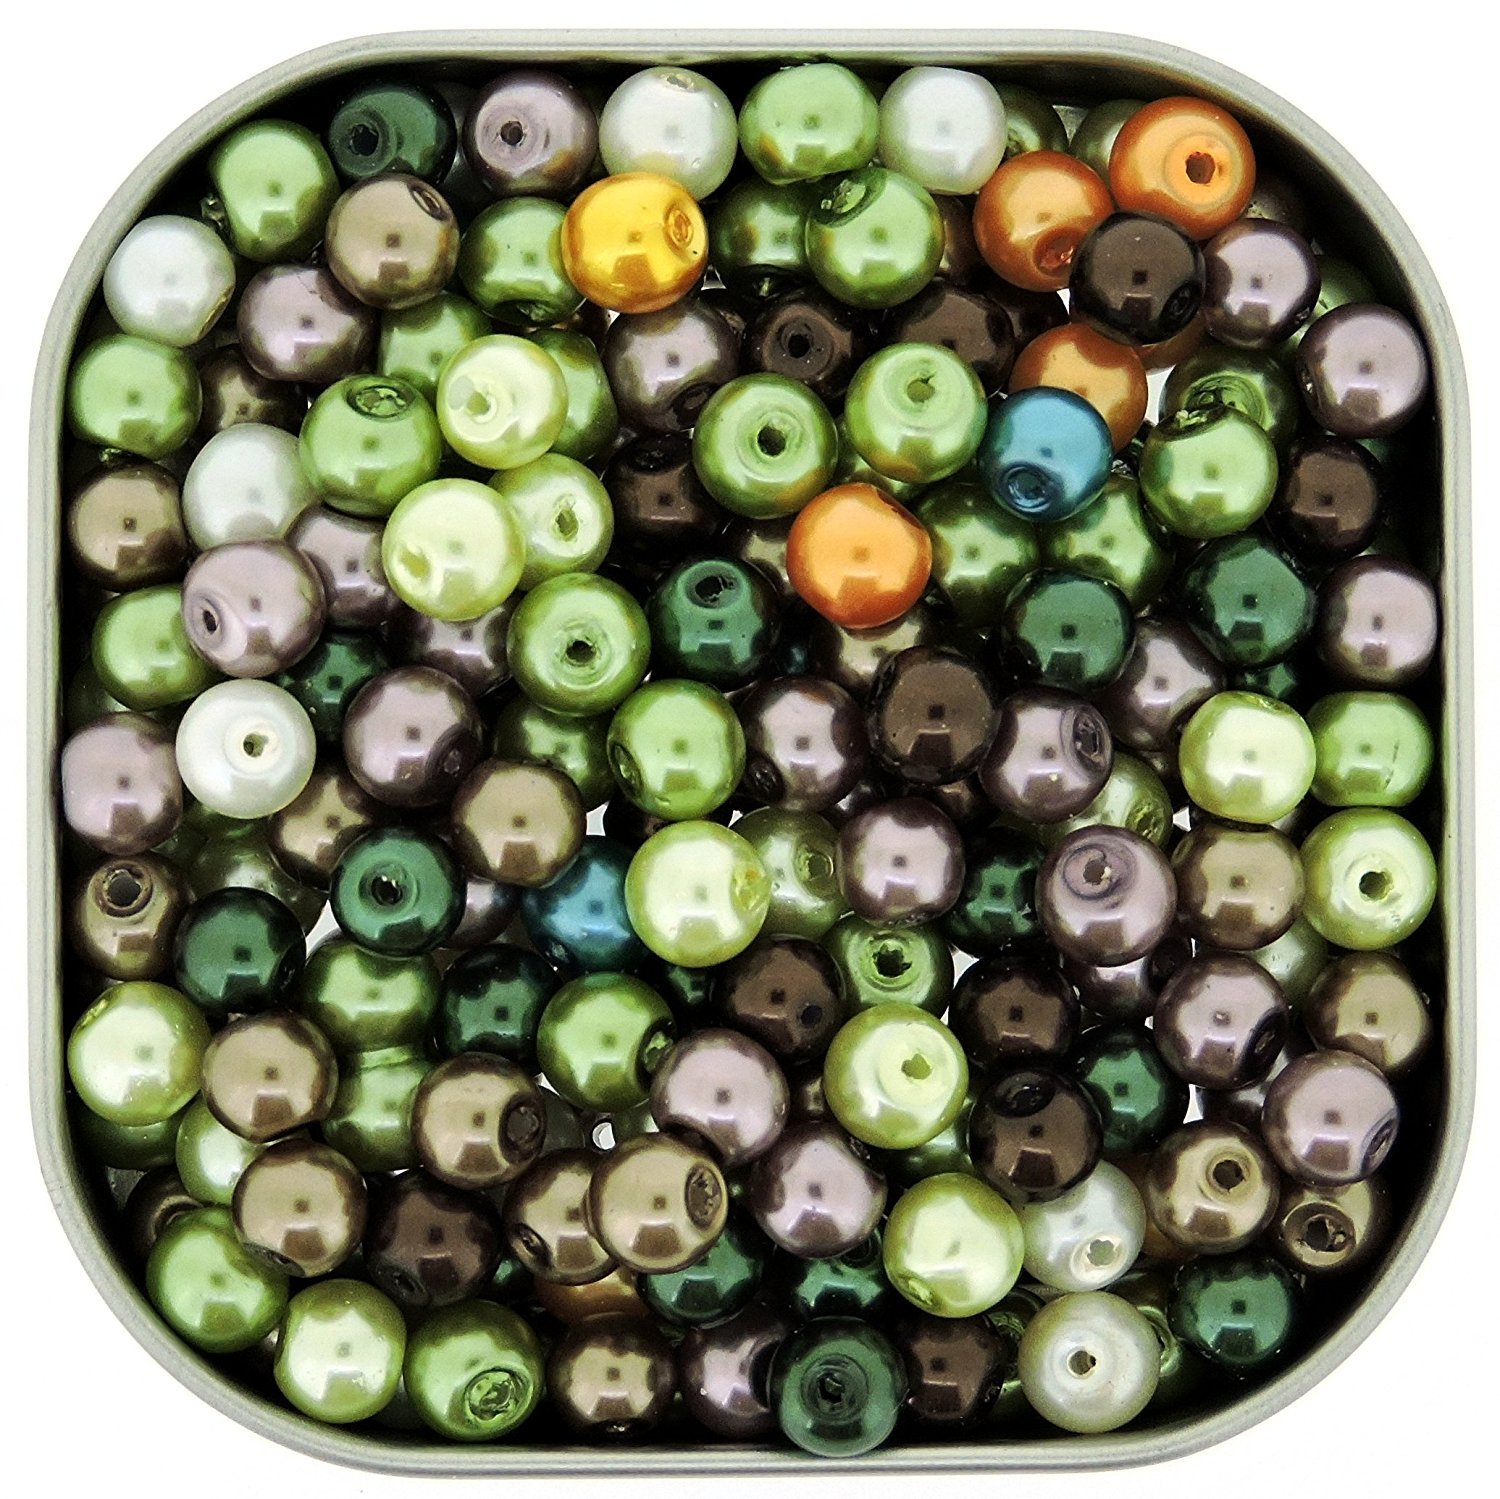 150 Mixed Colour Round and Oval Glass Pearl Beads for Jewellery Making 6 /& 8 mm